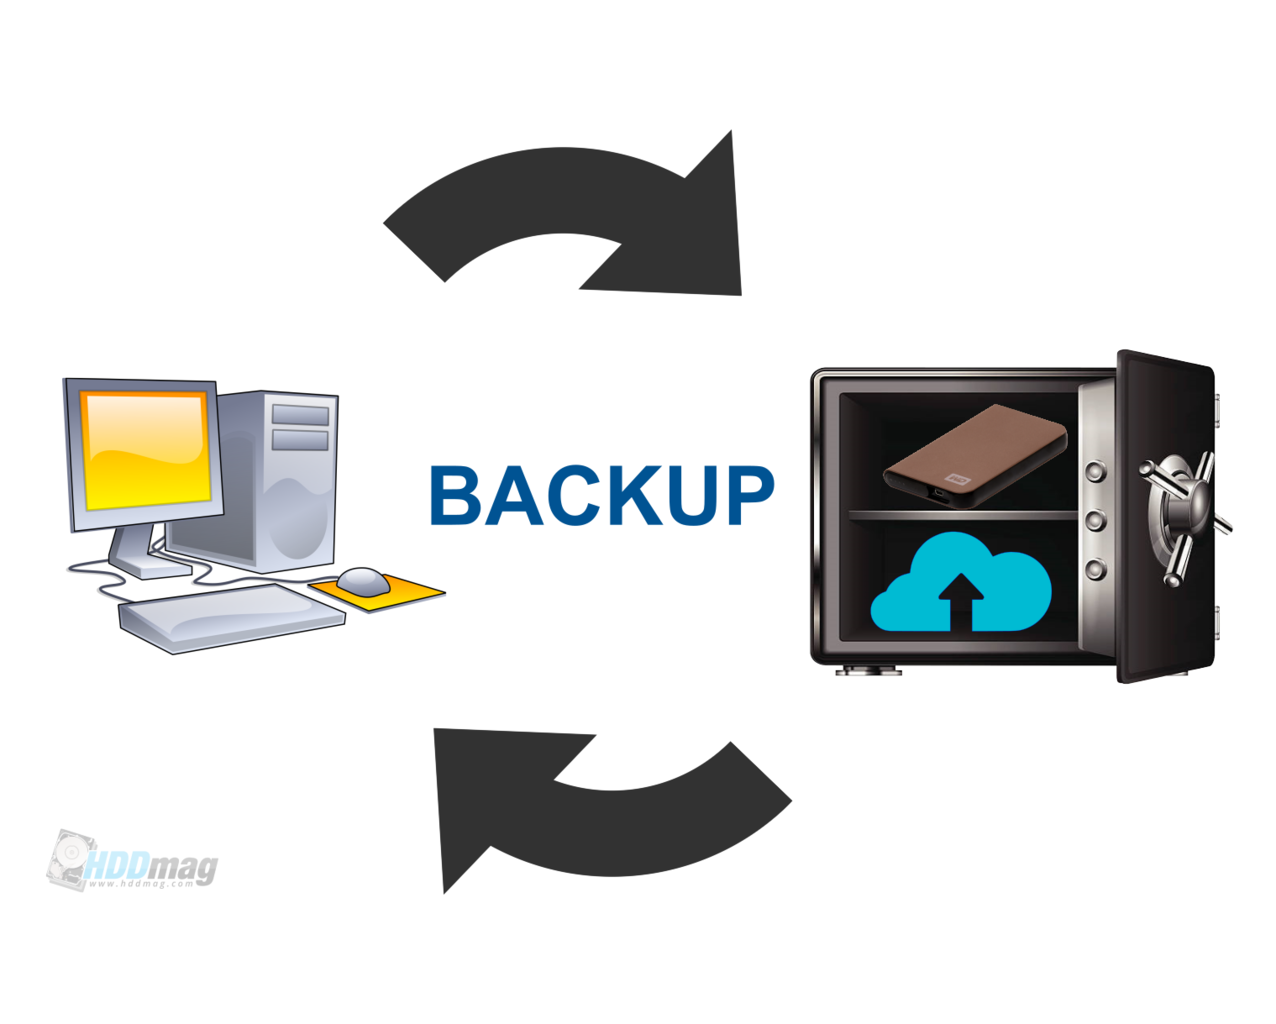 internal hard drive reliability, best hard drive pc, best hard drive laptop, backup hard drive, data security